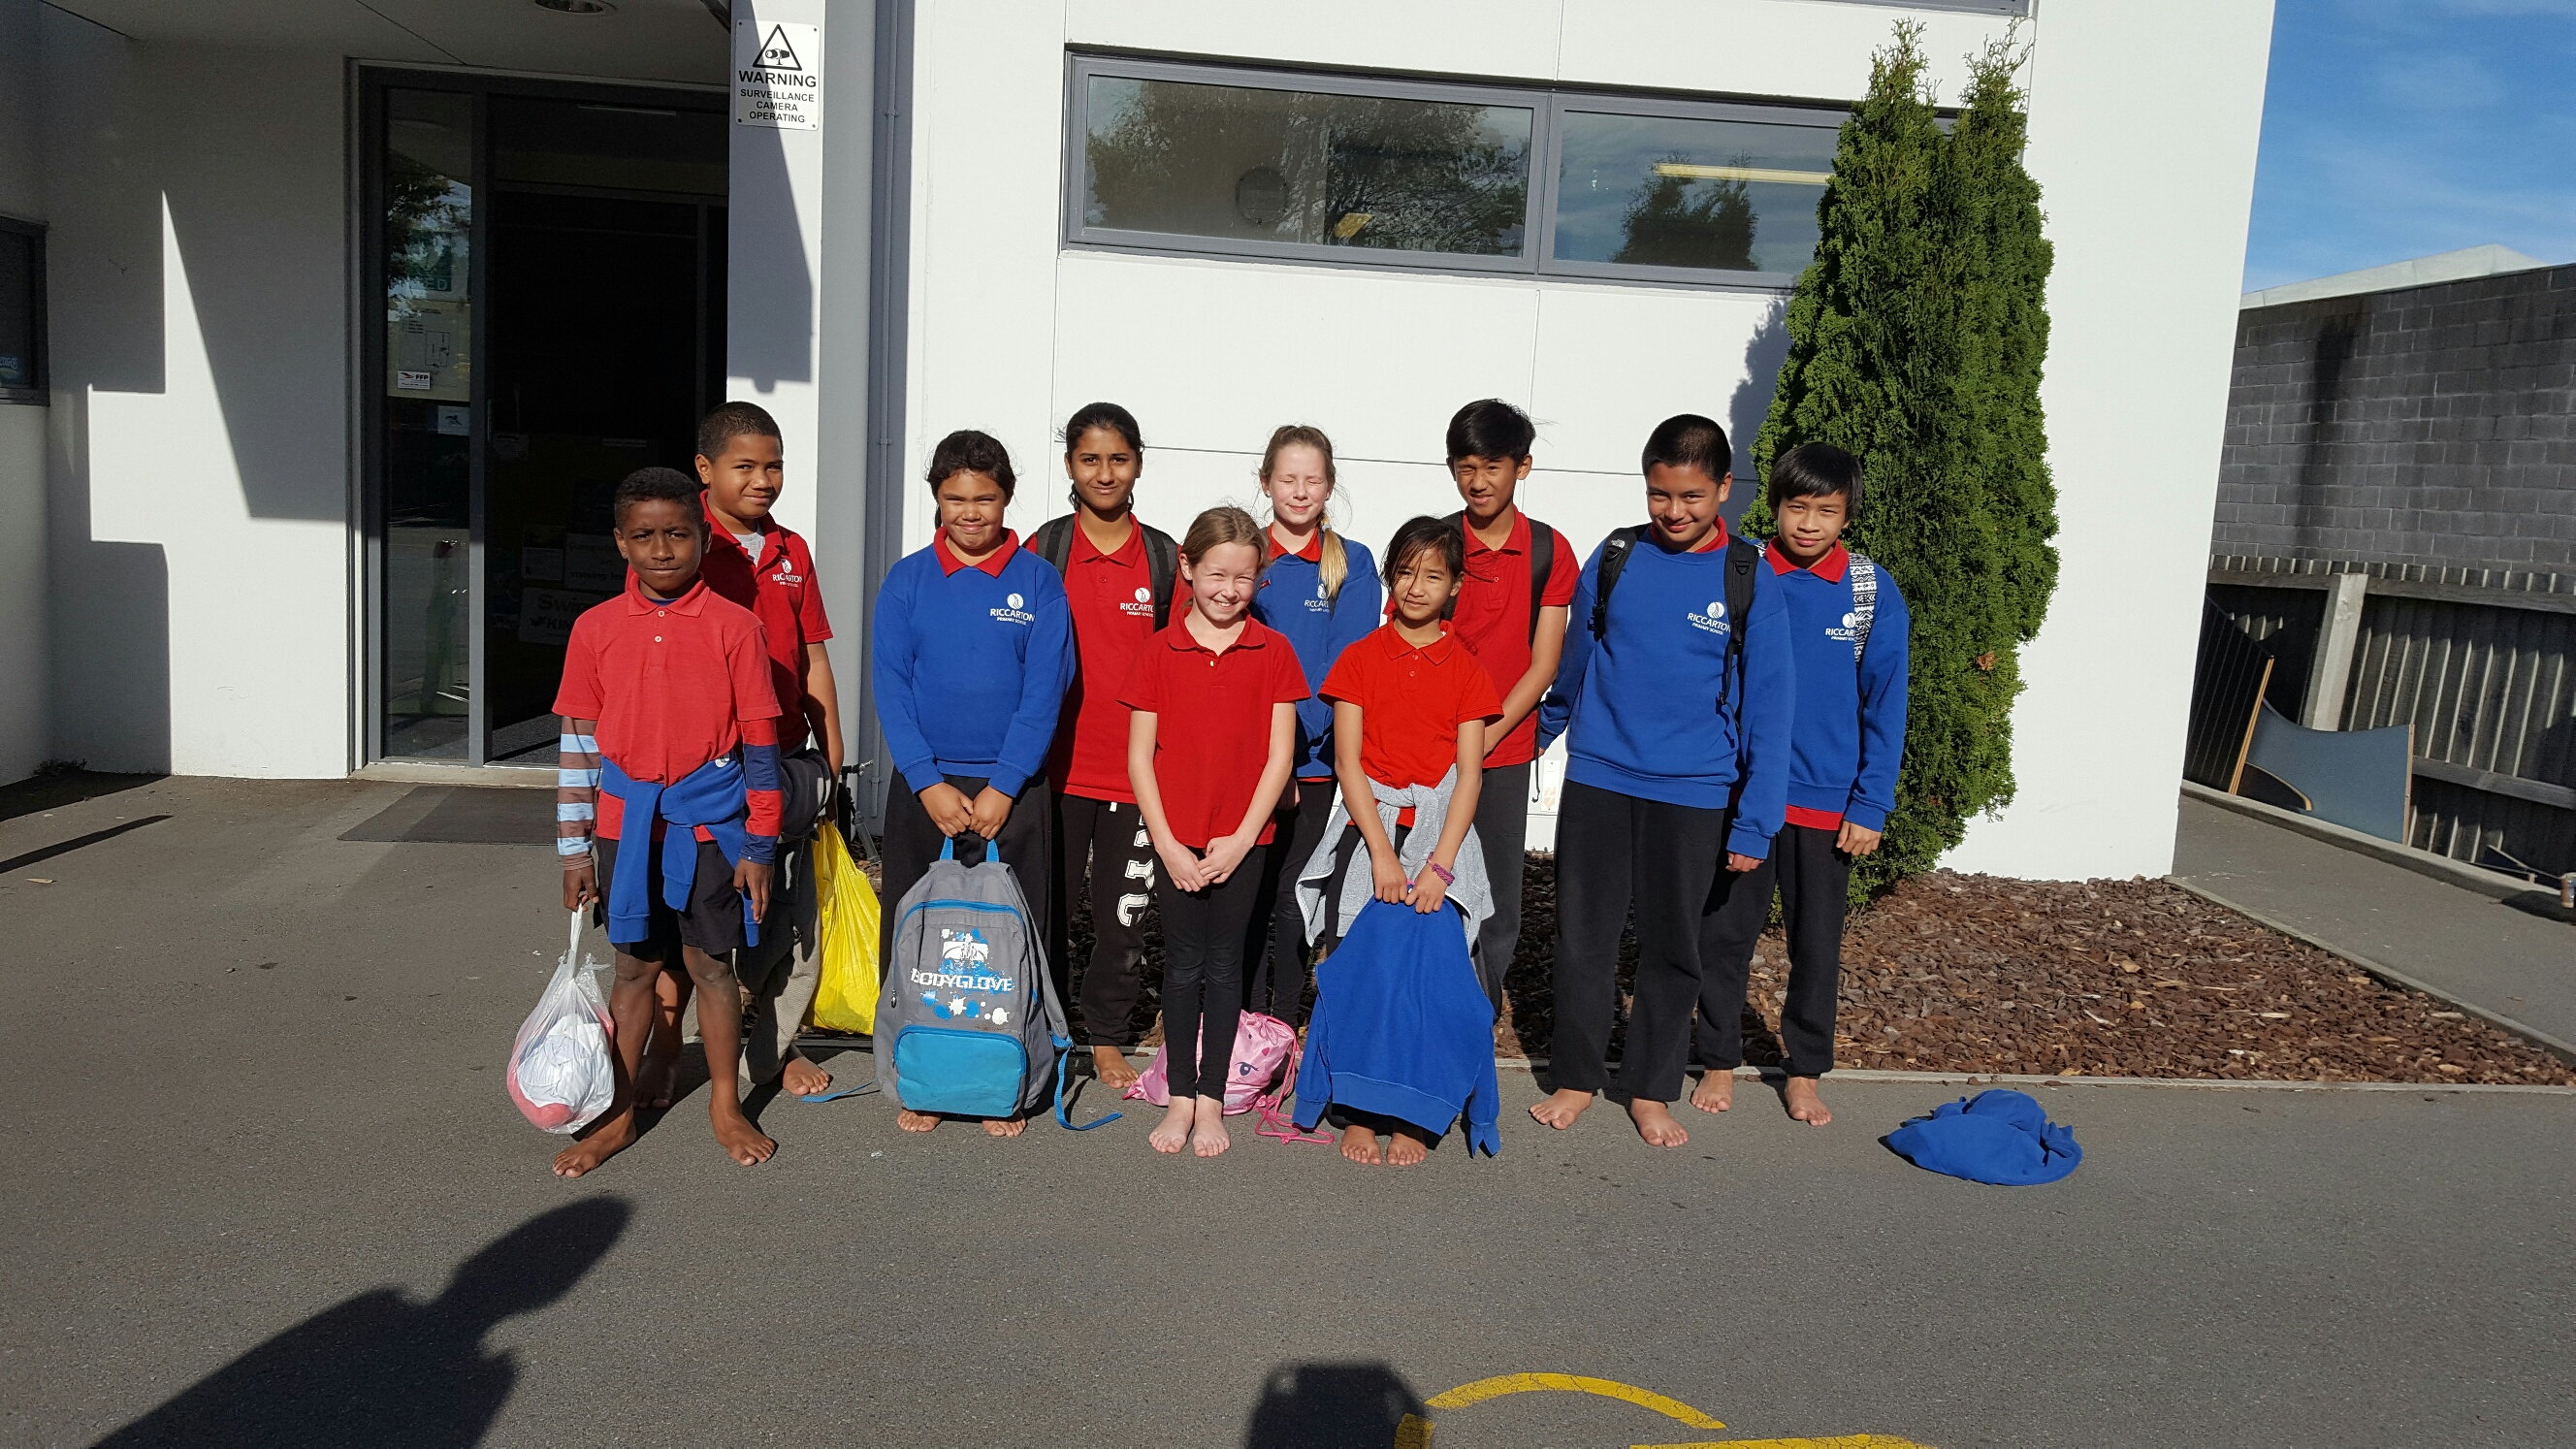 Doreen Brown Trust puts smiles on young swimmers' faces